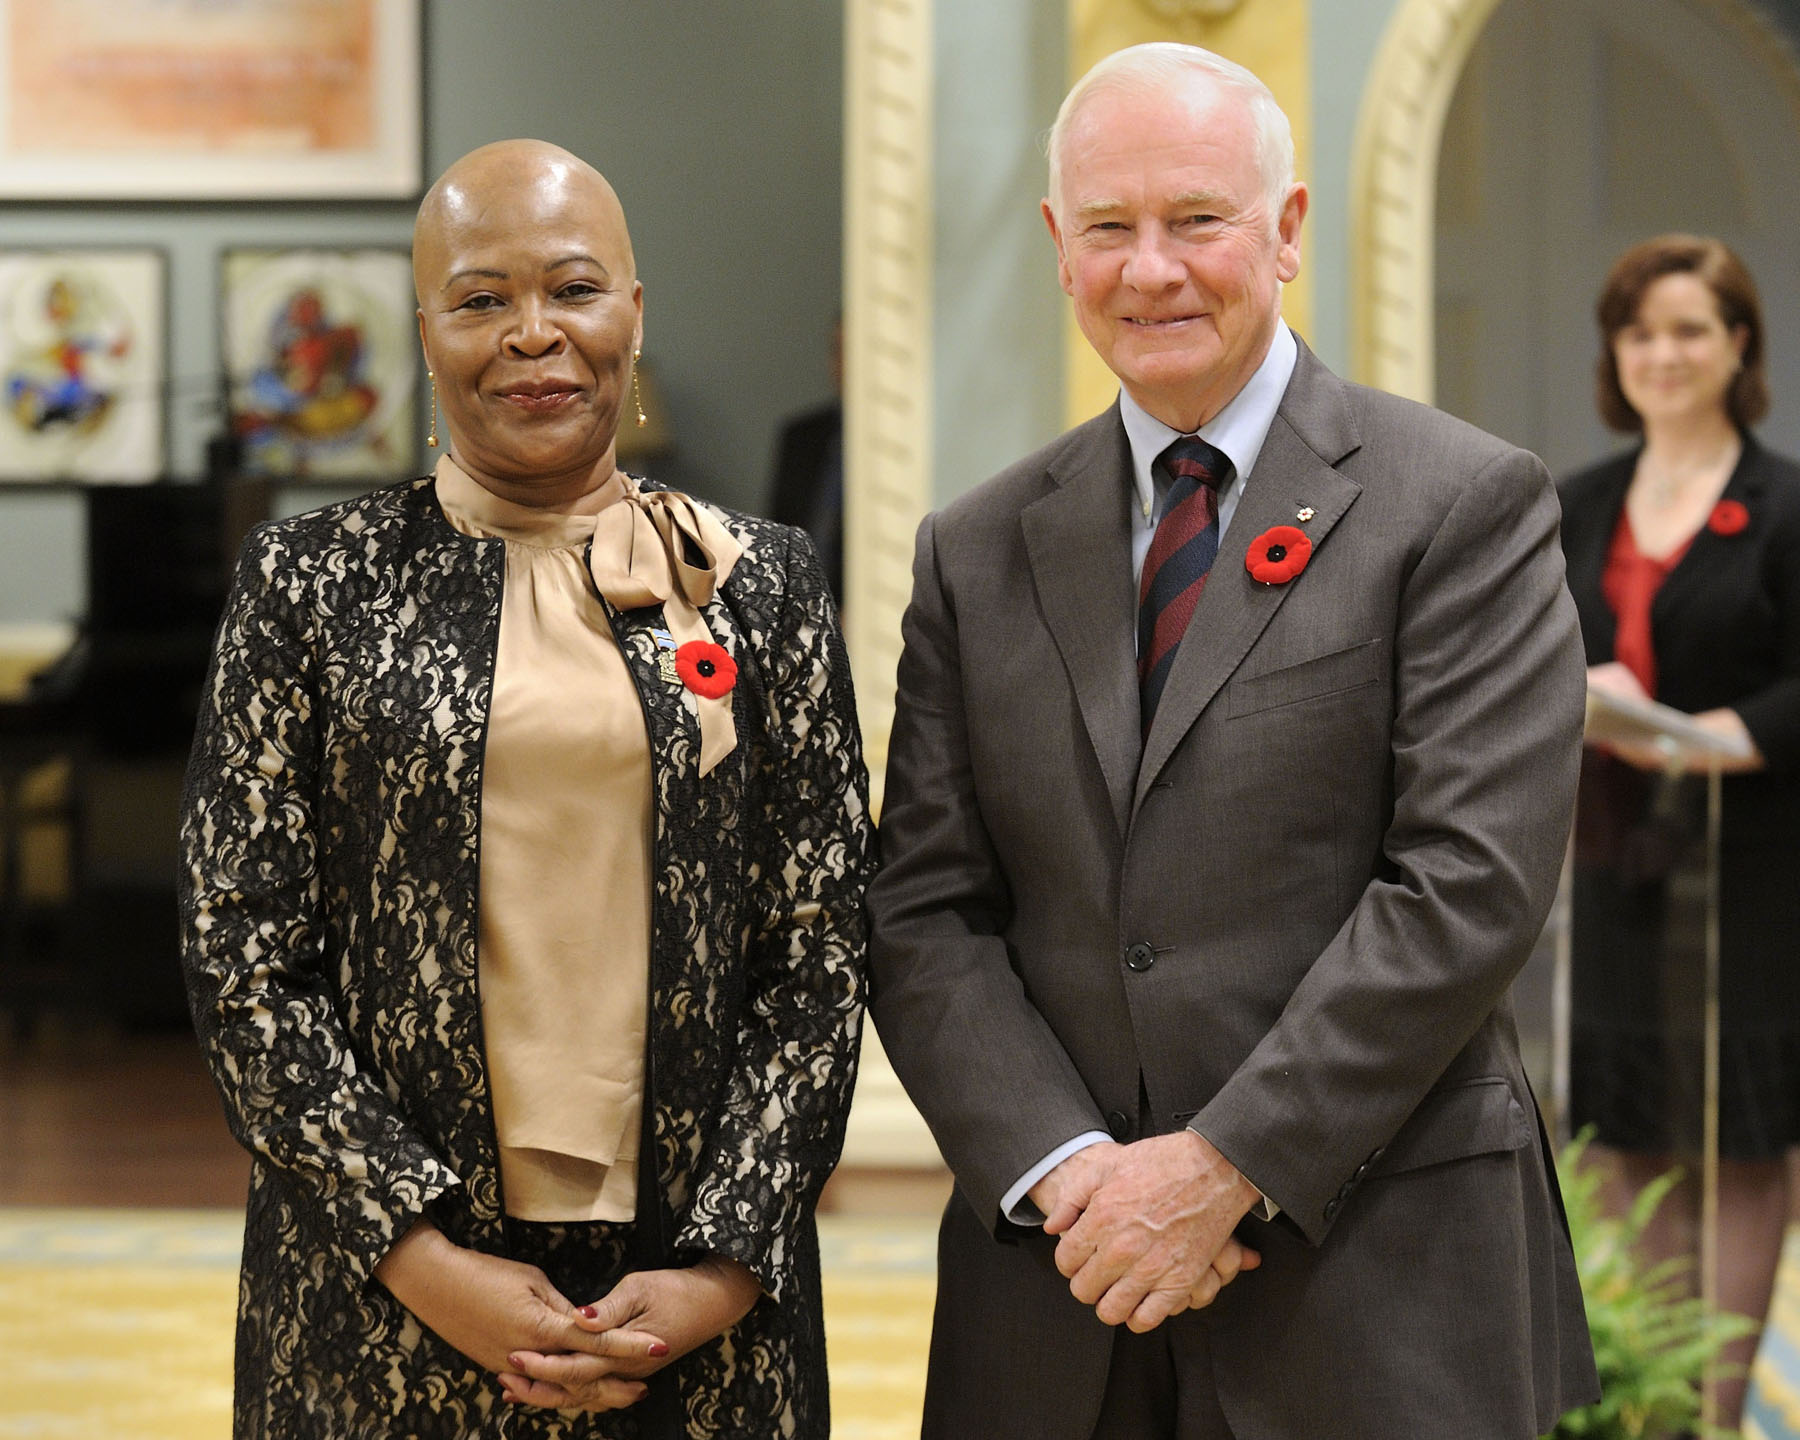 The Governor General received the credentials of Her Excellency Tebelelo Mazile Seretse, High Commissioner for the Republic of Botswana